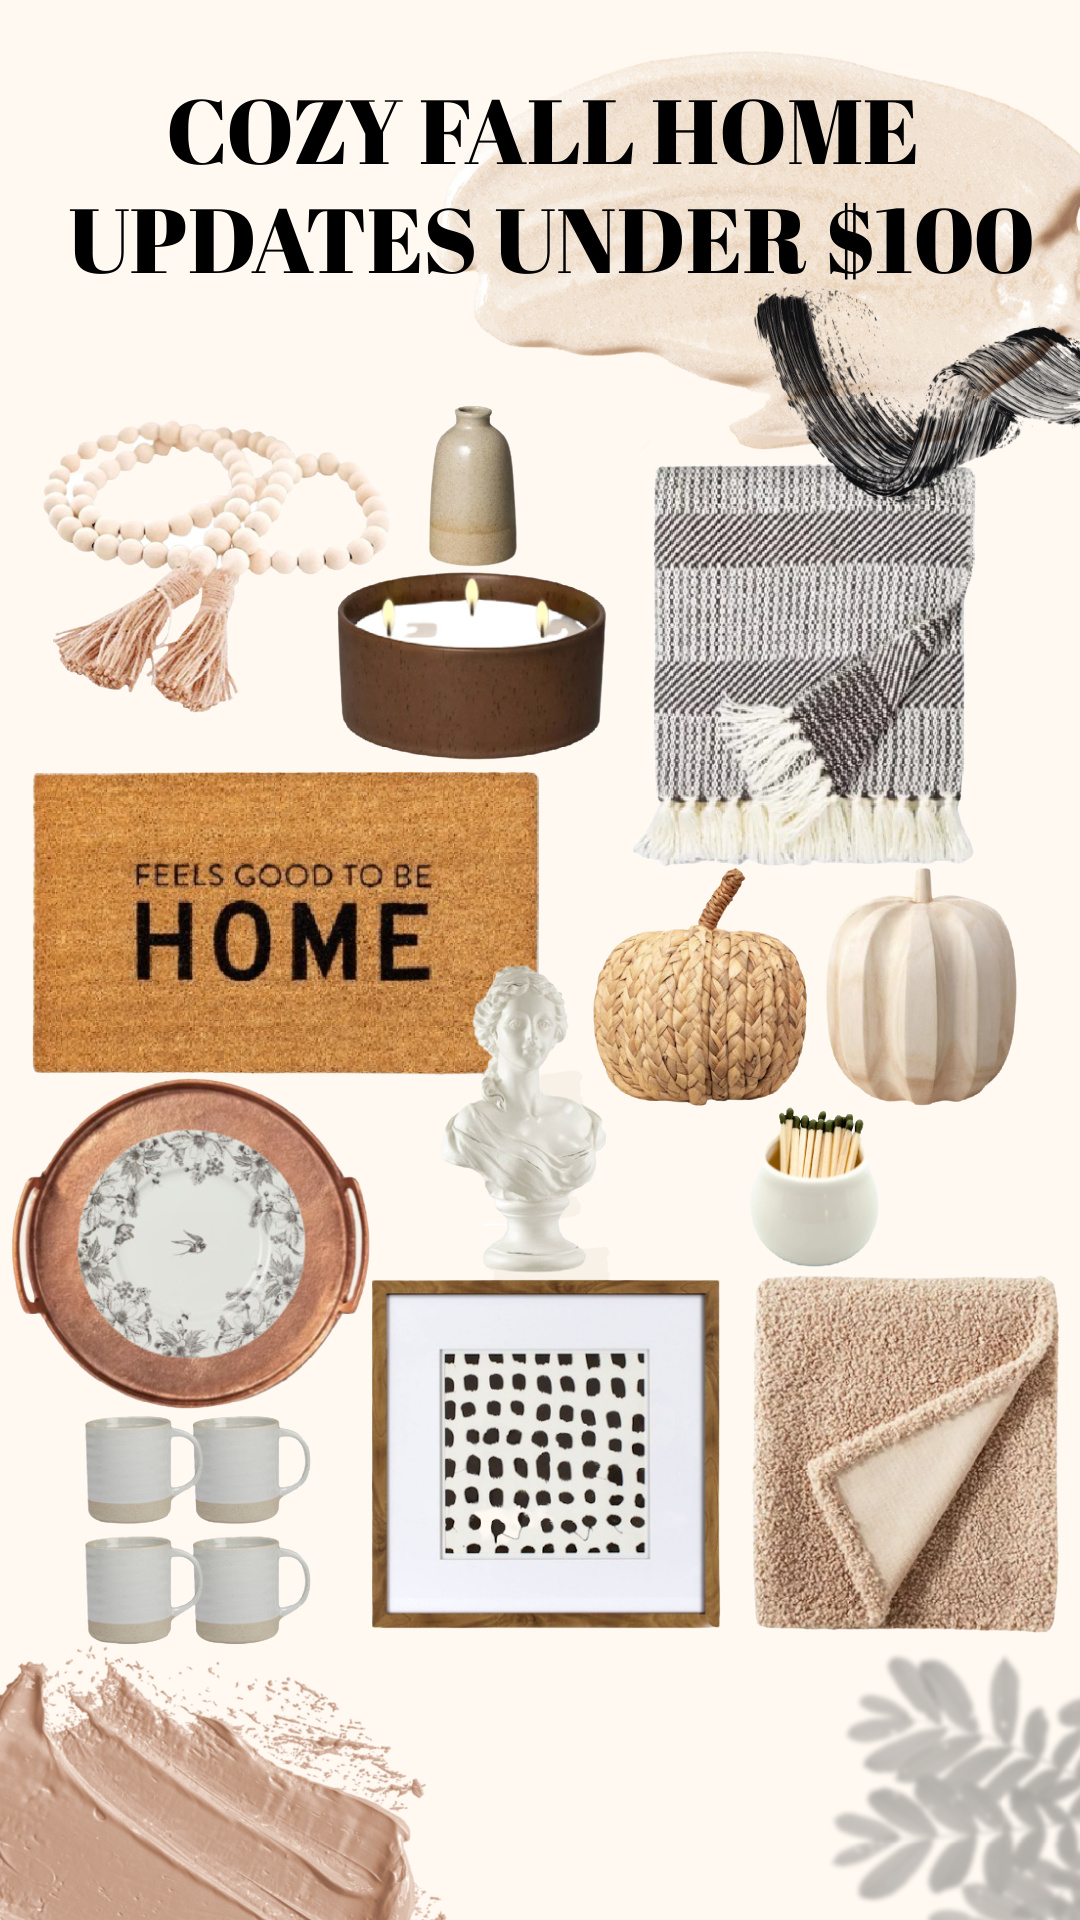 COZY FALL HOME UPDATES UNDER $100